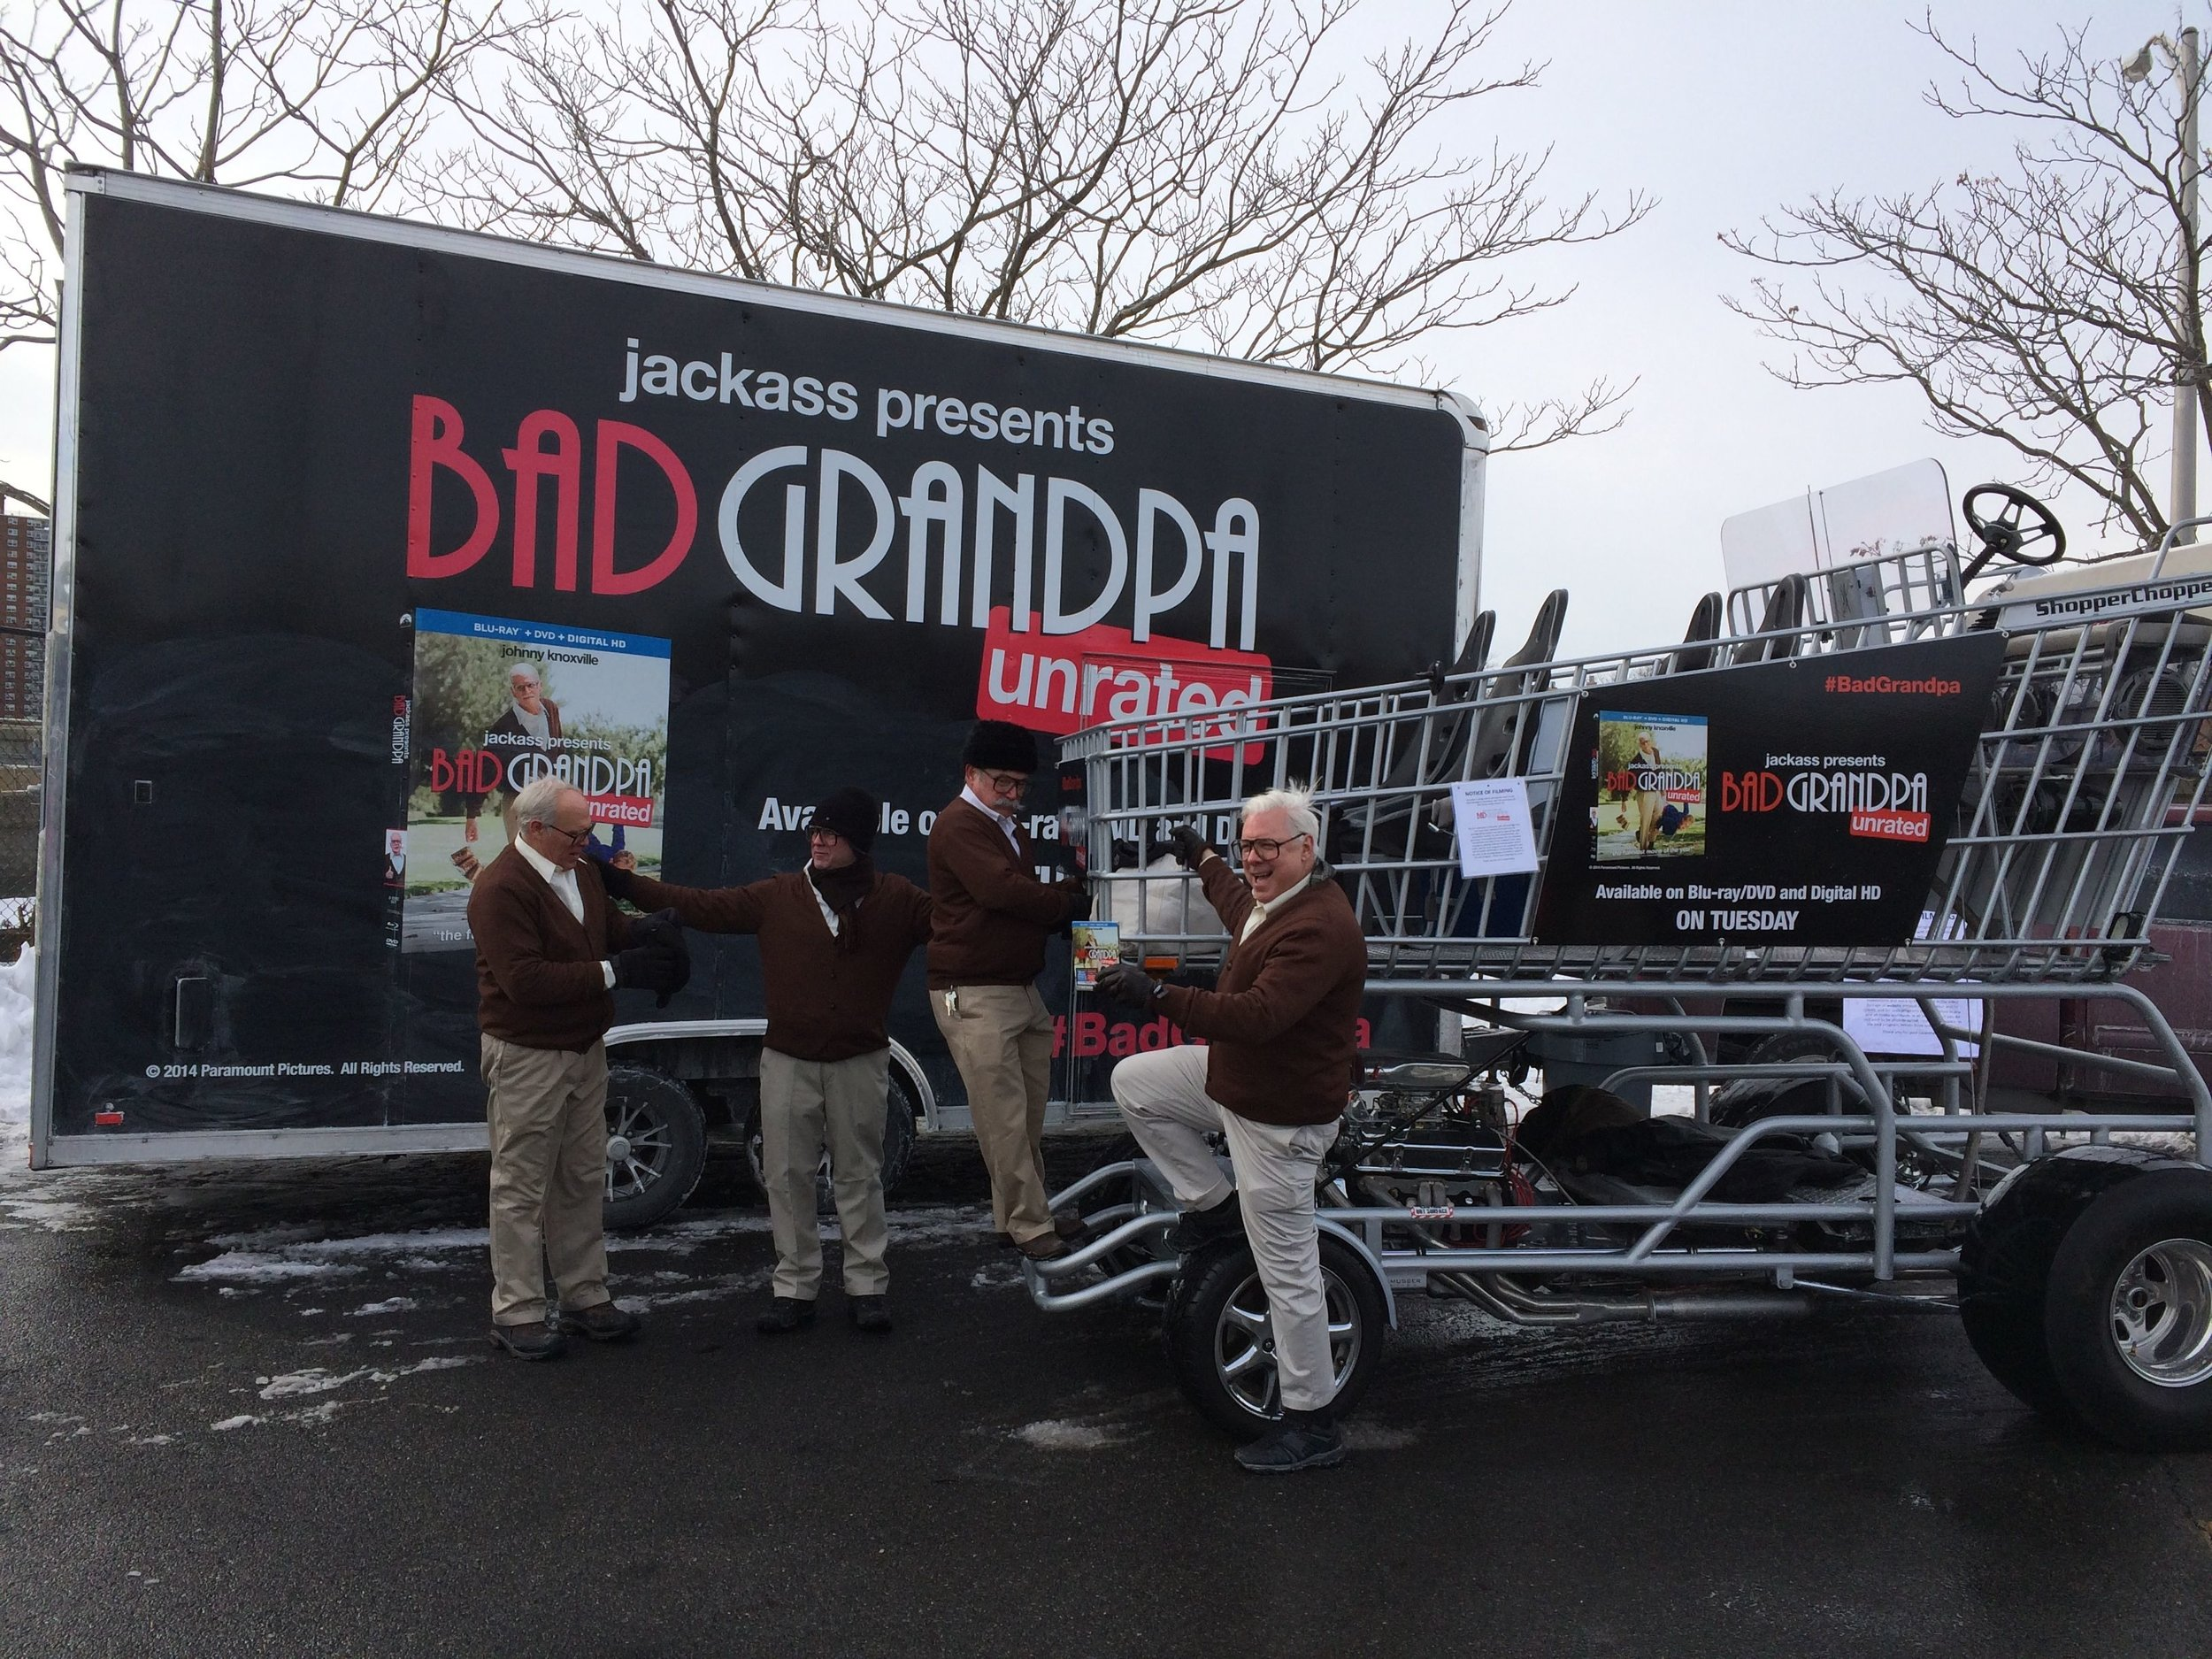 Five Bad Grandpas, snow, Yankee Stadium, hockey fans and a Johnny Knoxville DVD release promotion - that is a recipe for a memorable event - executed to perfection by Shopper Chopper.